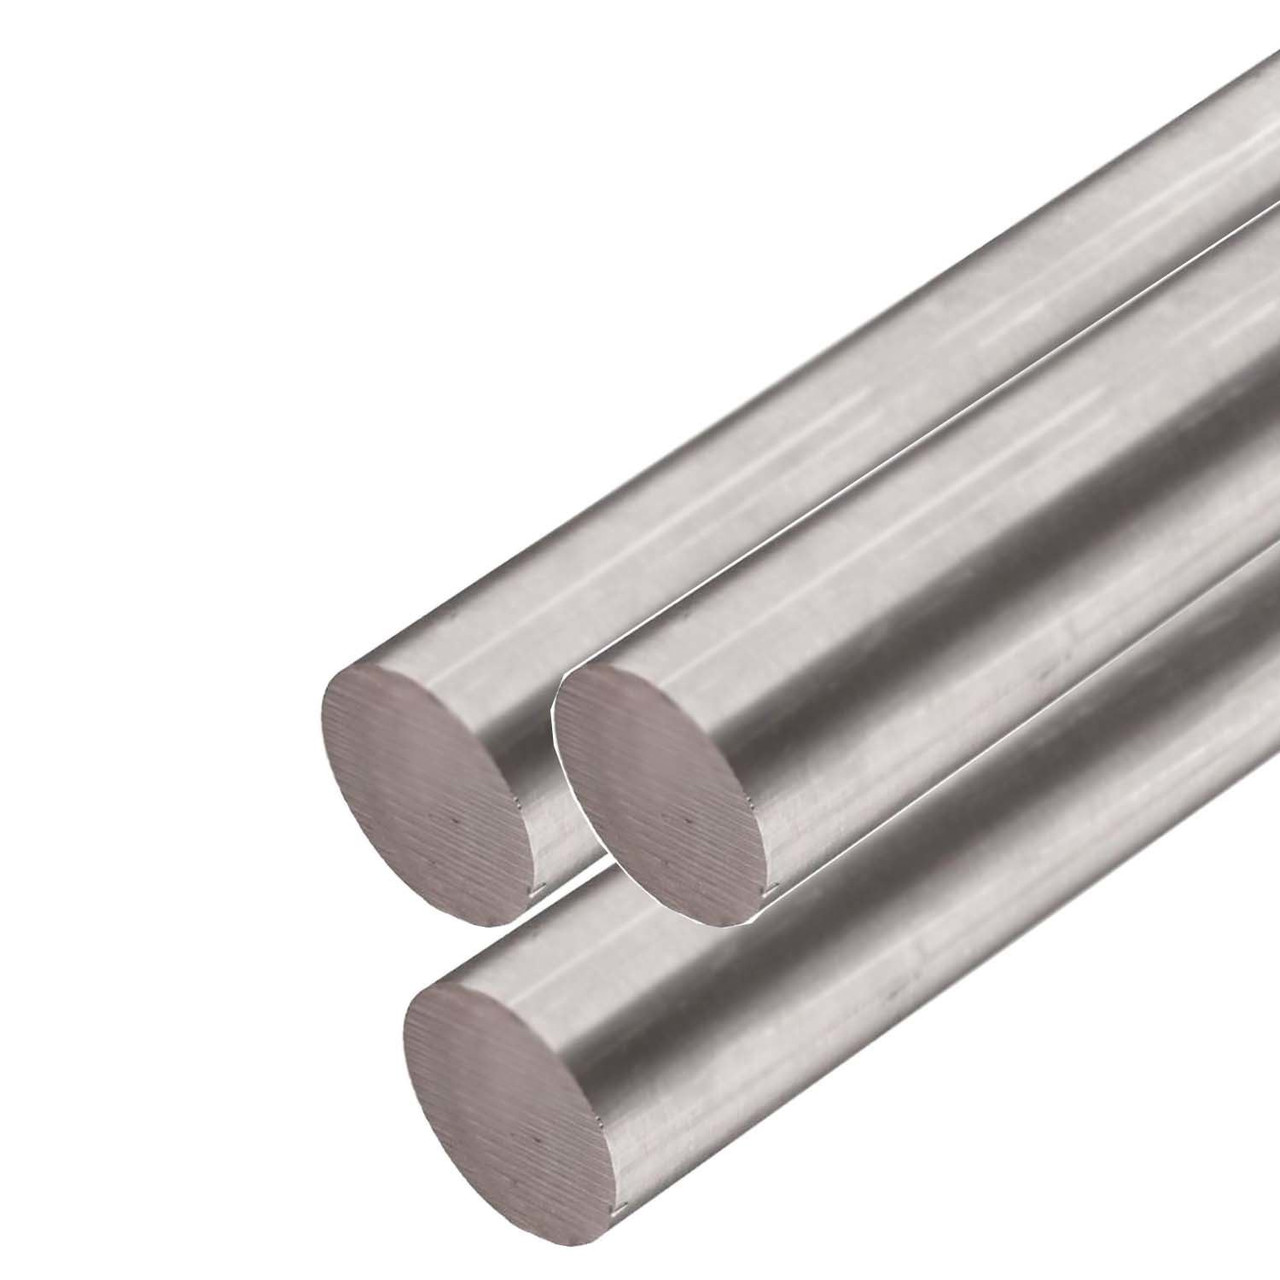 0.218 (7/32 inch) x 12 Feet (3 pieces, 48 inches), 416 CF Stainless Steel Round Rod